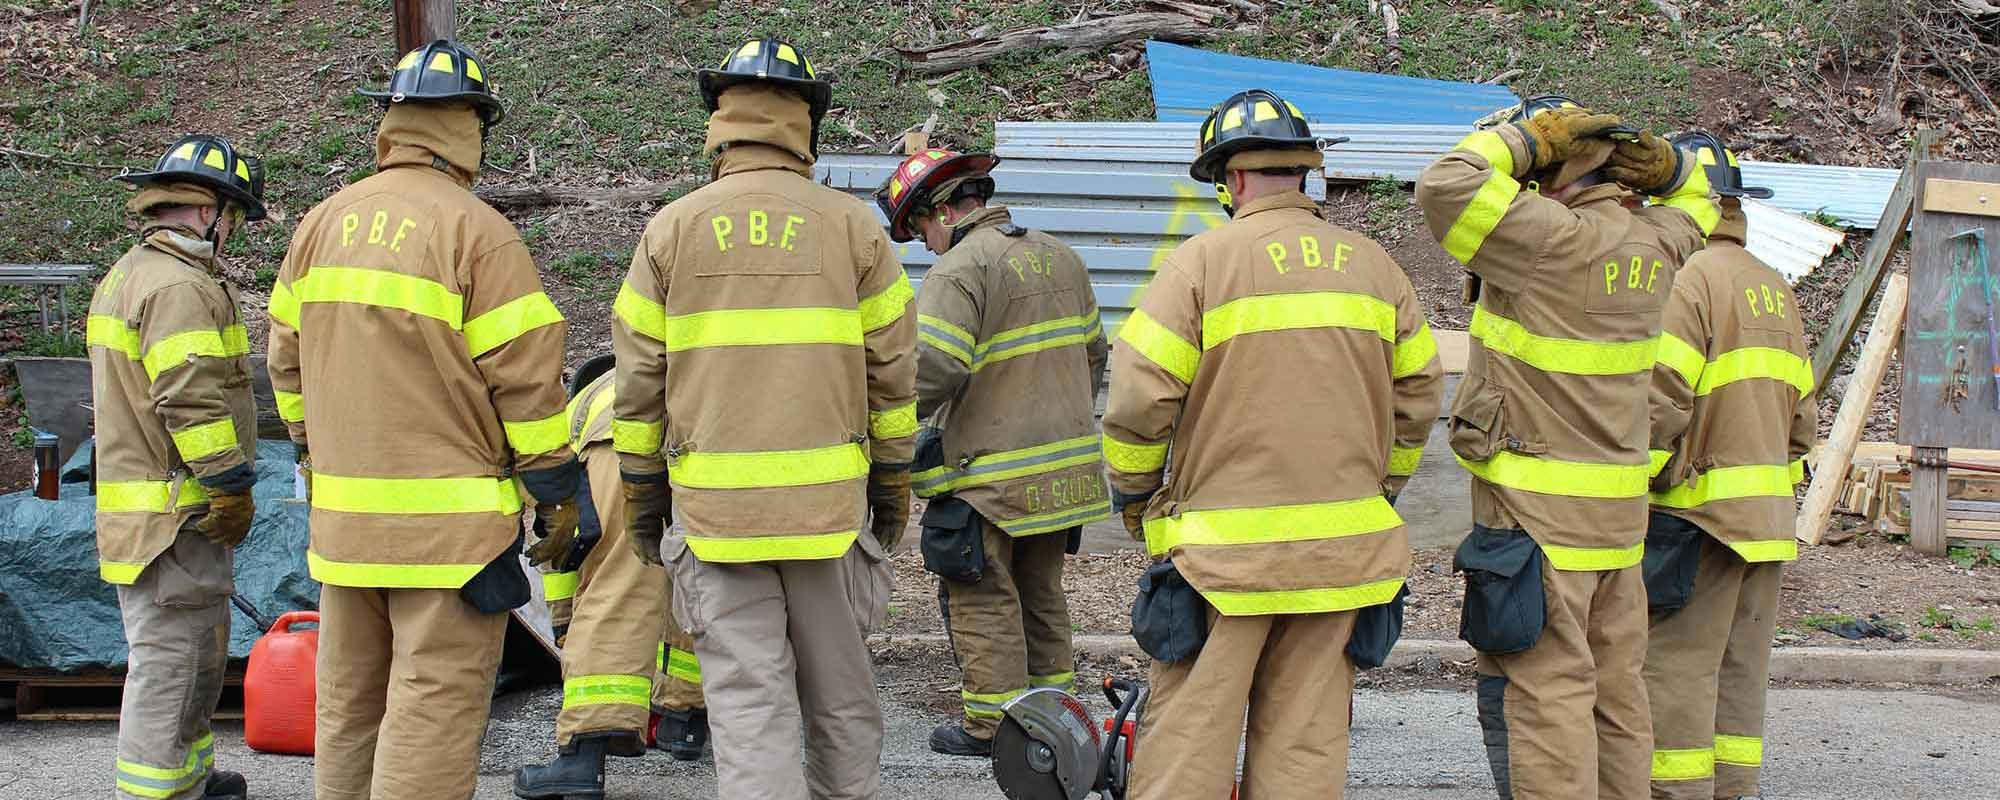 City of Pittsburgh Firefighter Recruitment